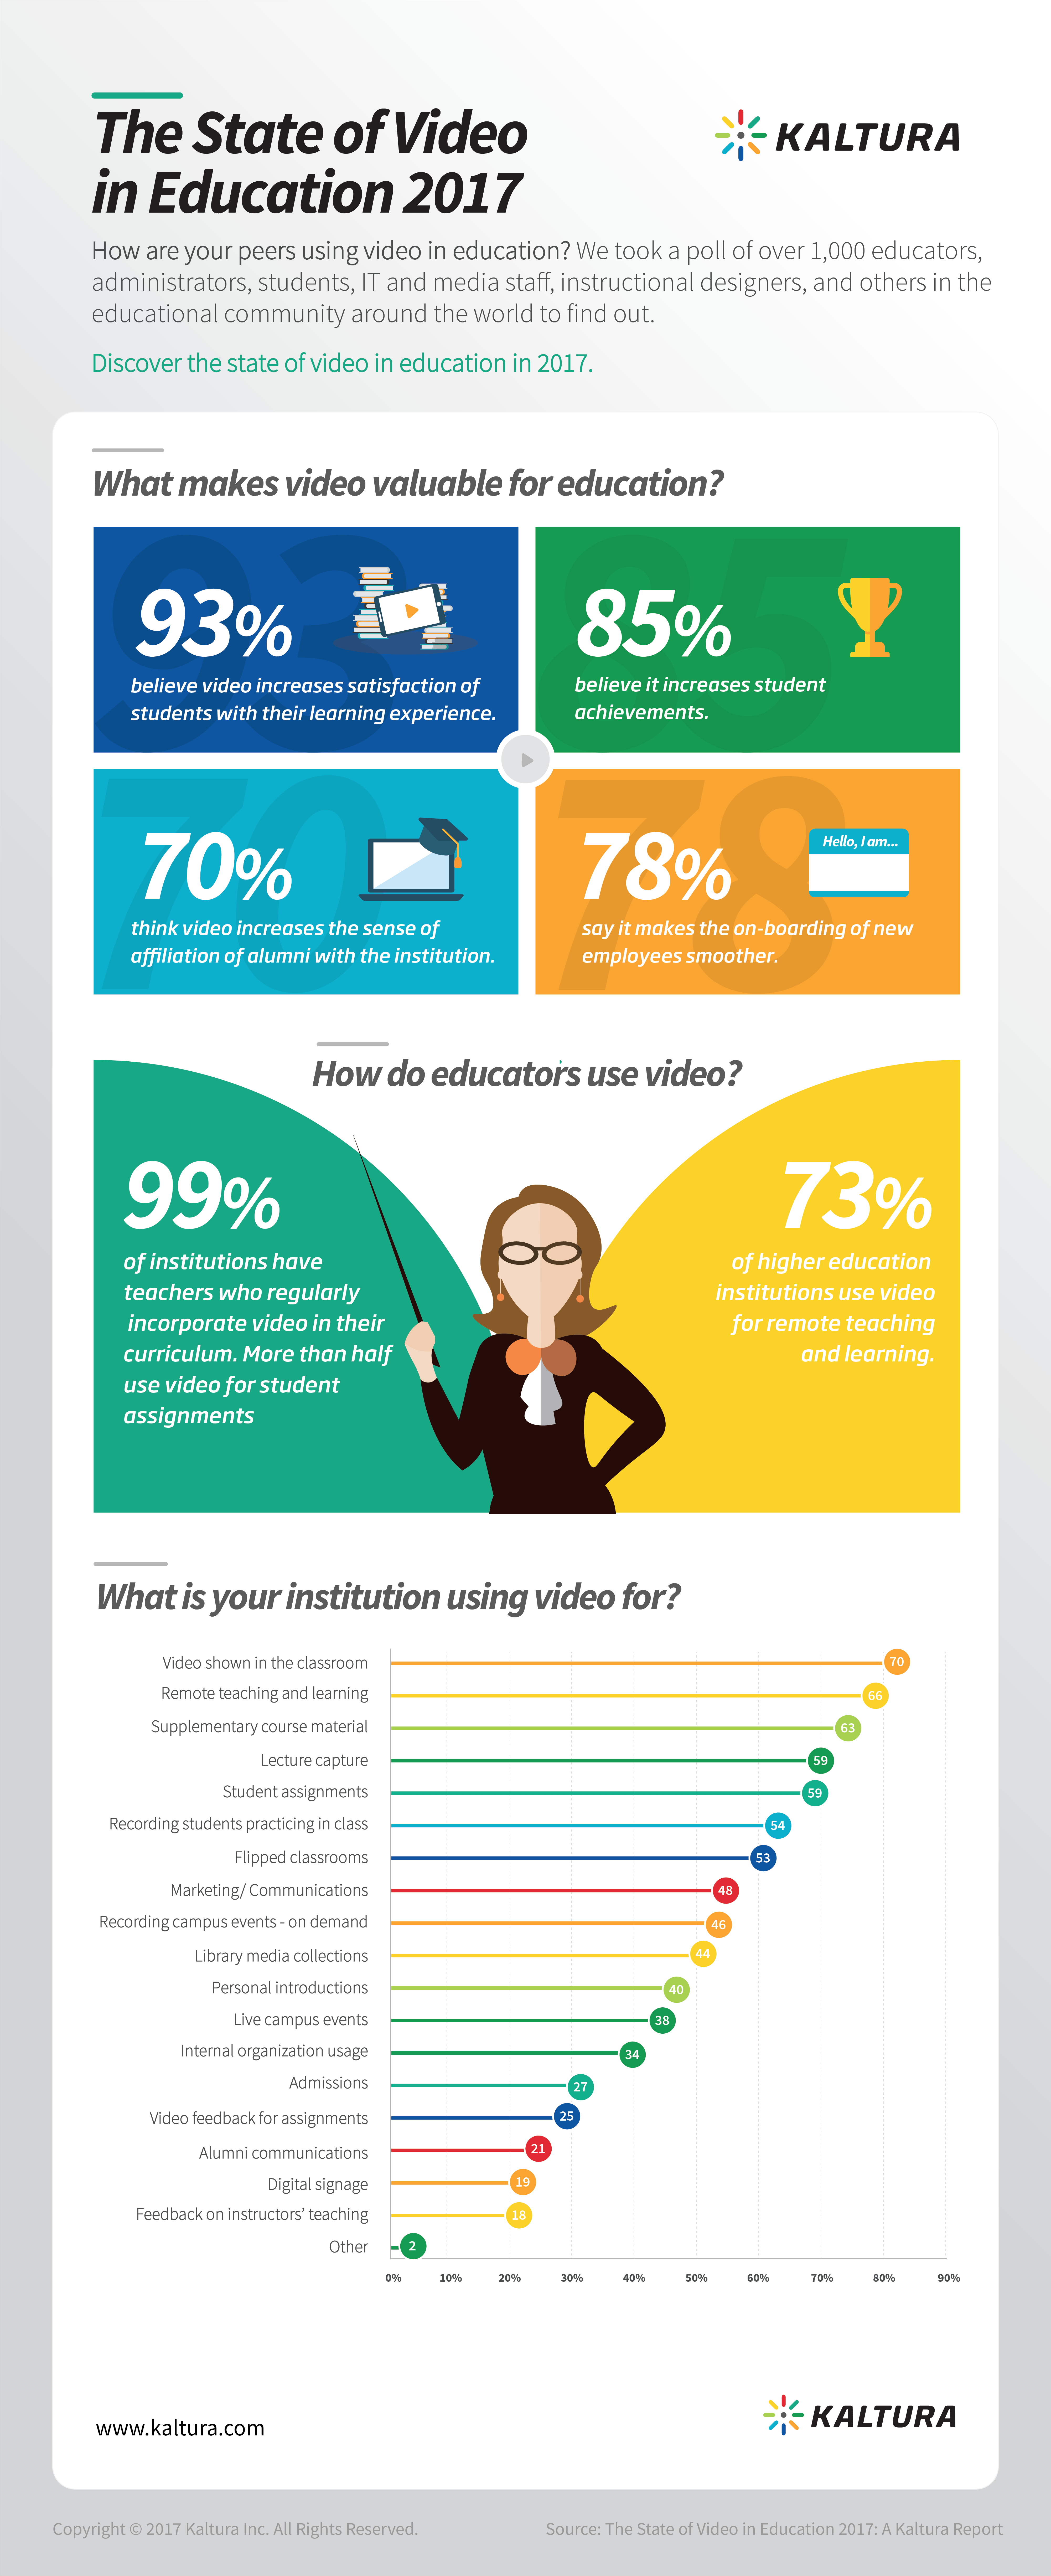 Survey results from the State of Video in Education 2017 report